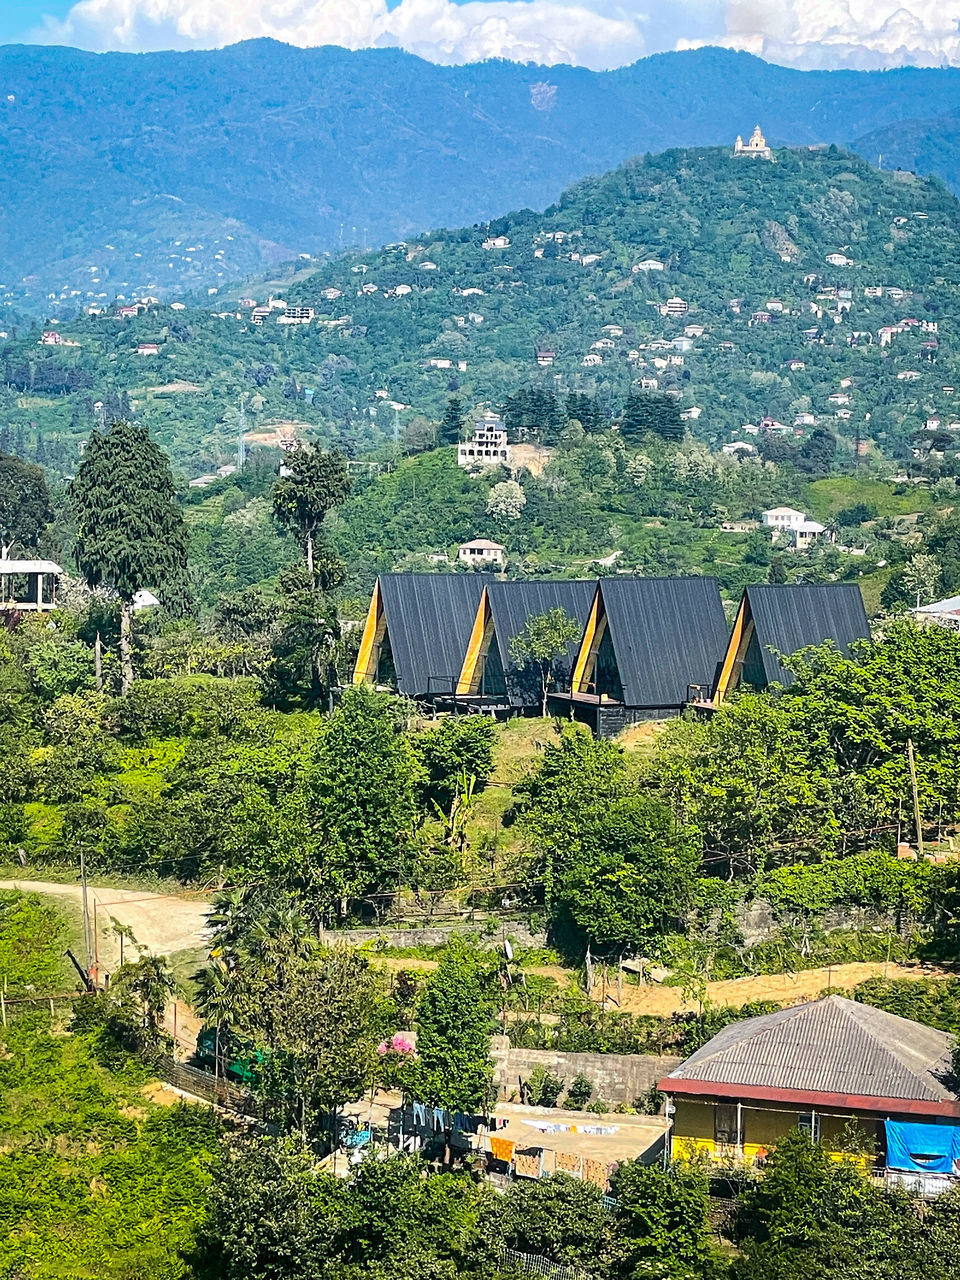 HIGH ANGLE VIEW OF TREES AND BUILDINGS AGAINST MOUNTAIN